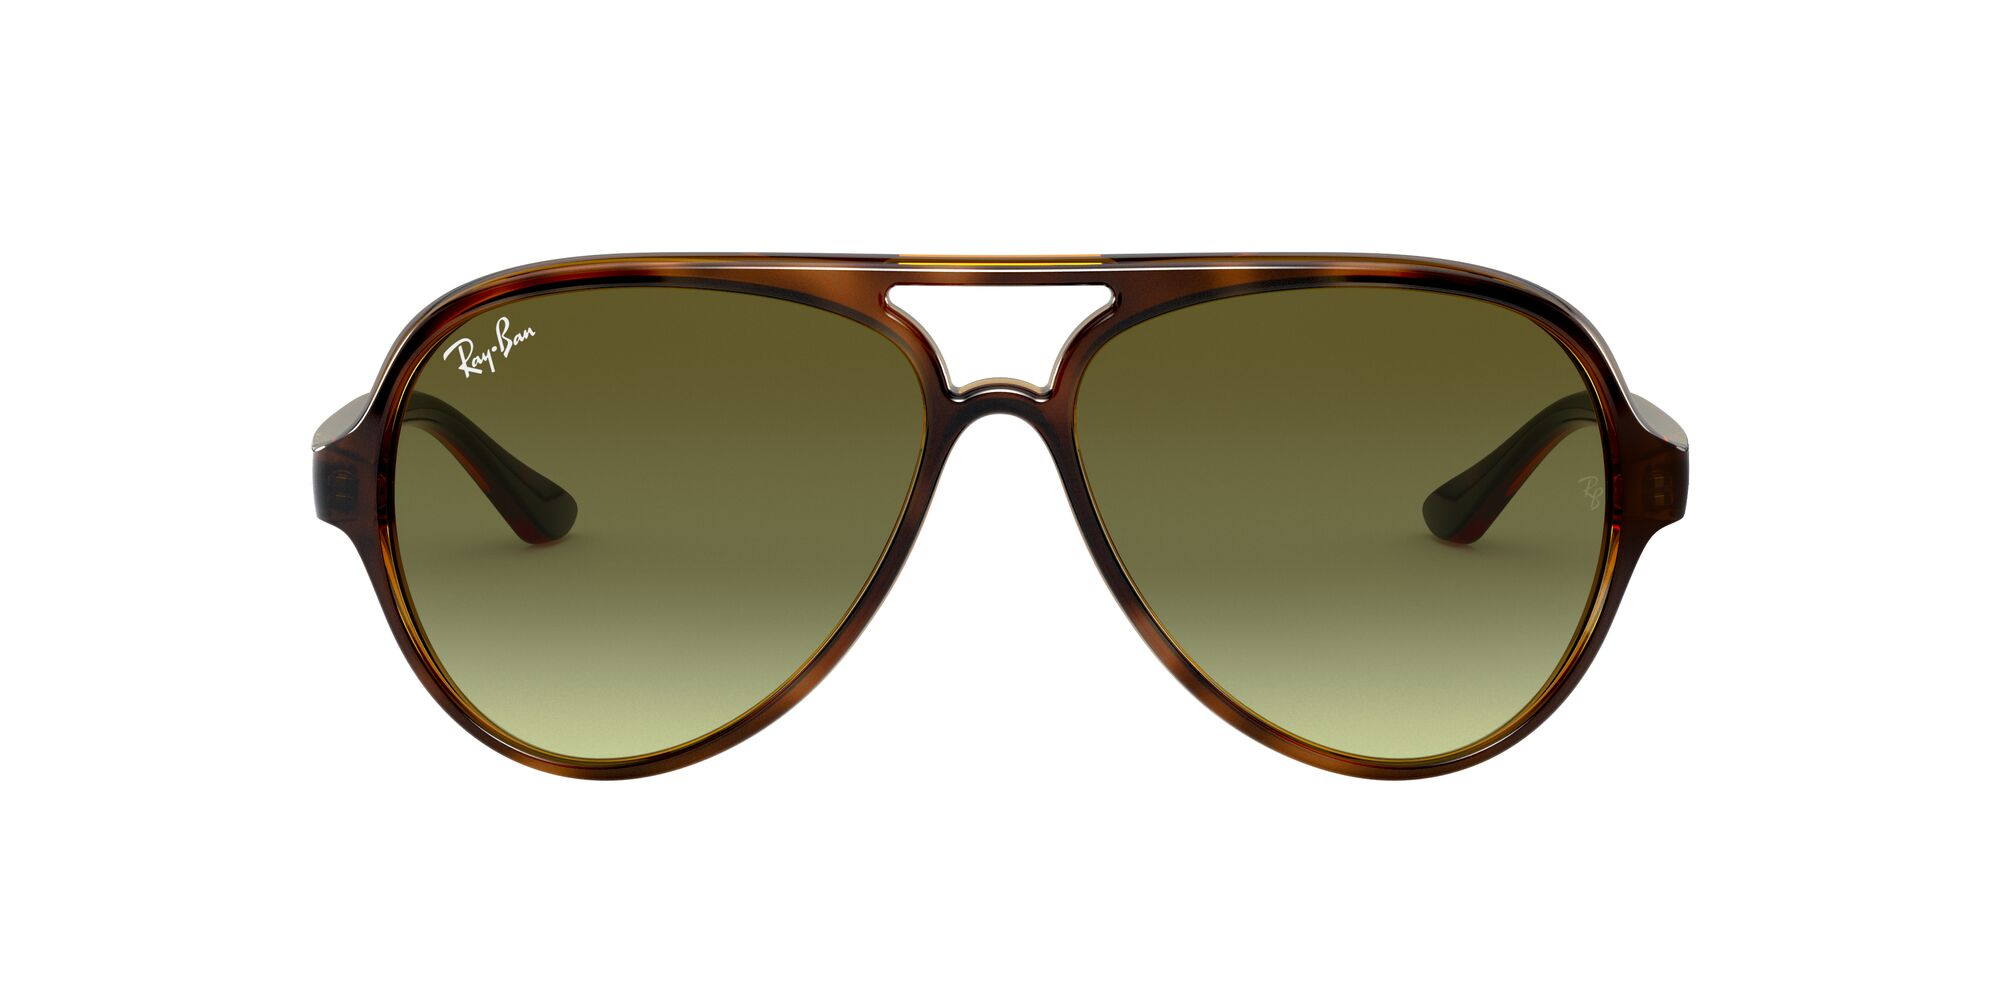 Front Ray-Ban Ray-Ban 0RB4125 710/A6 57/13 Zilver, Bruin/Groen